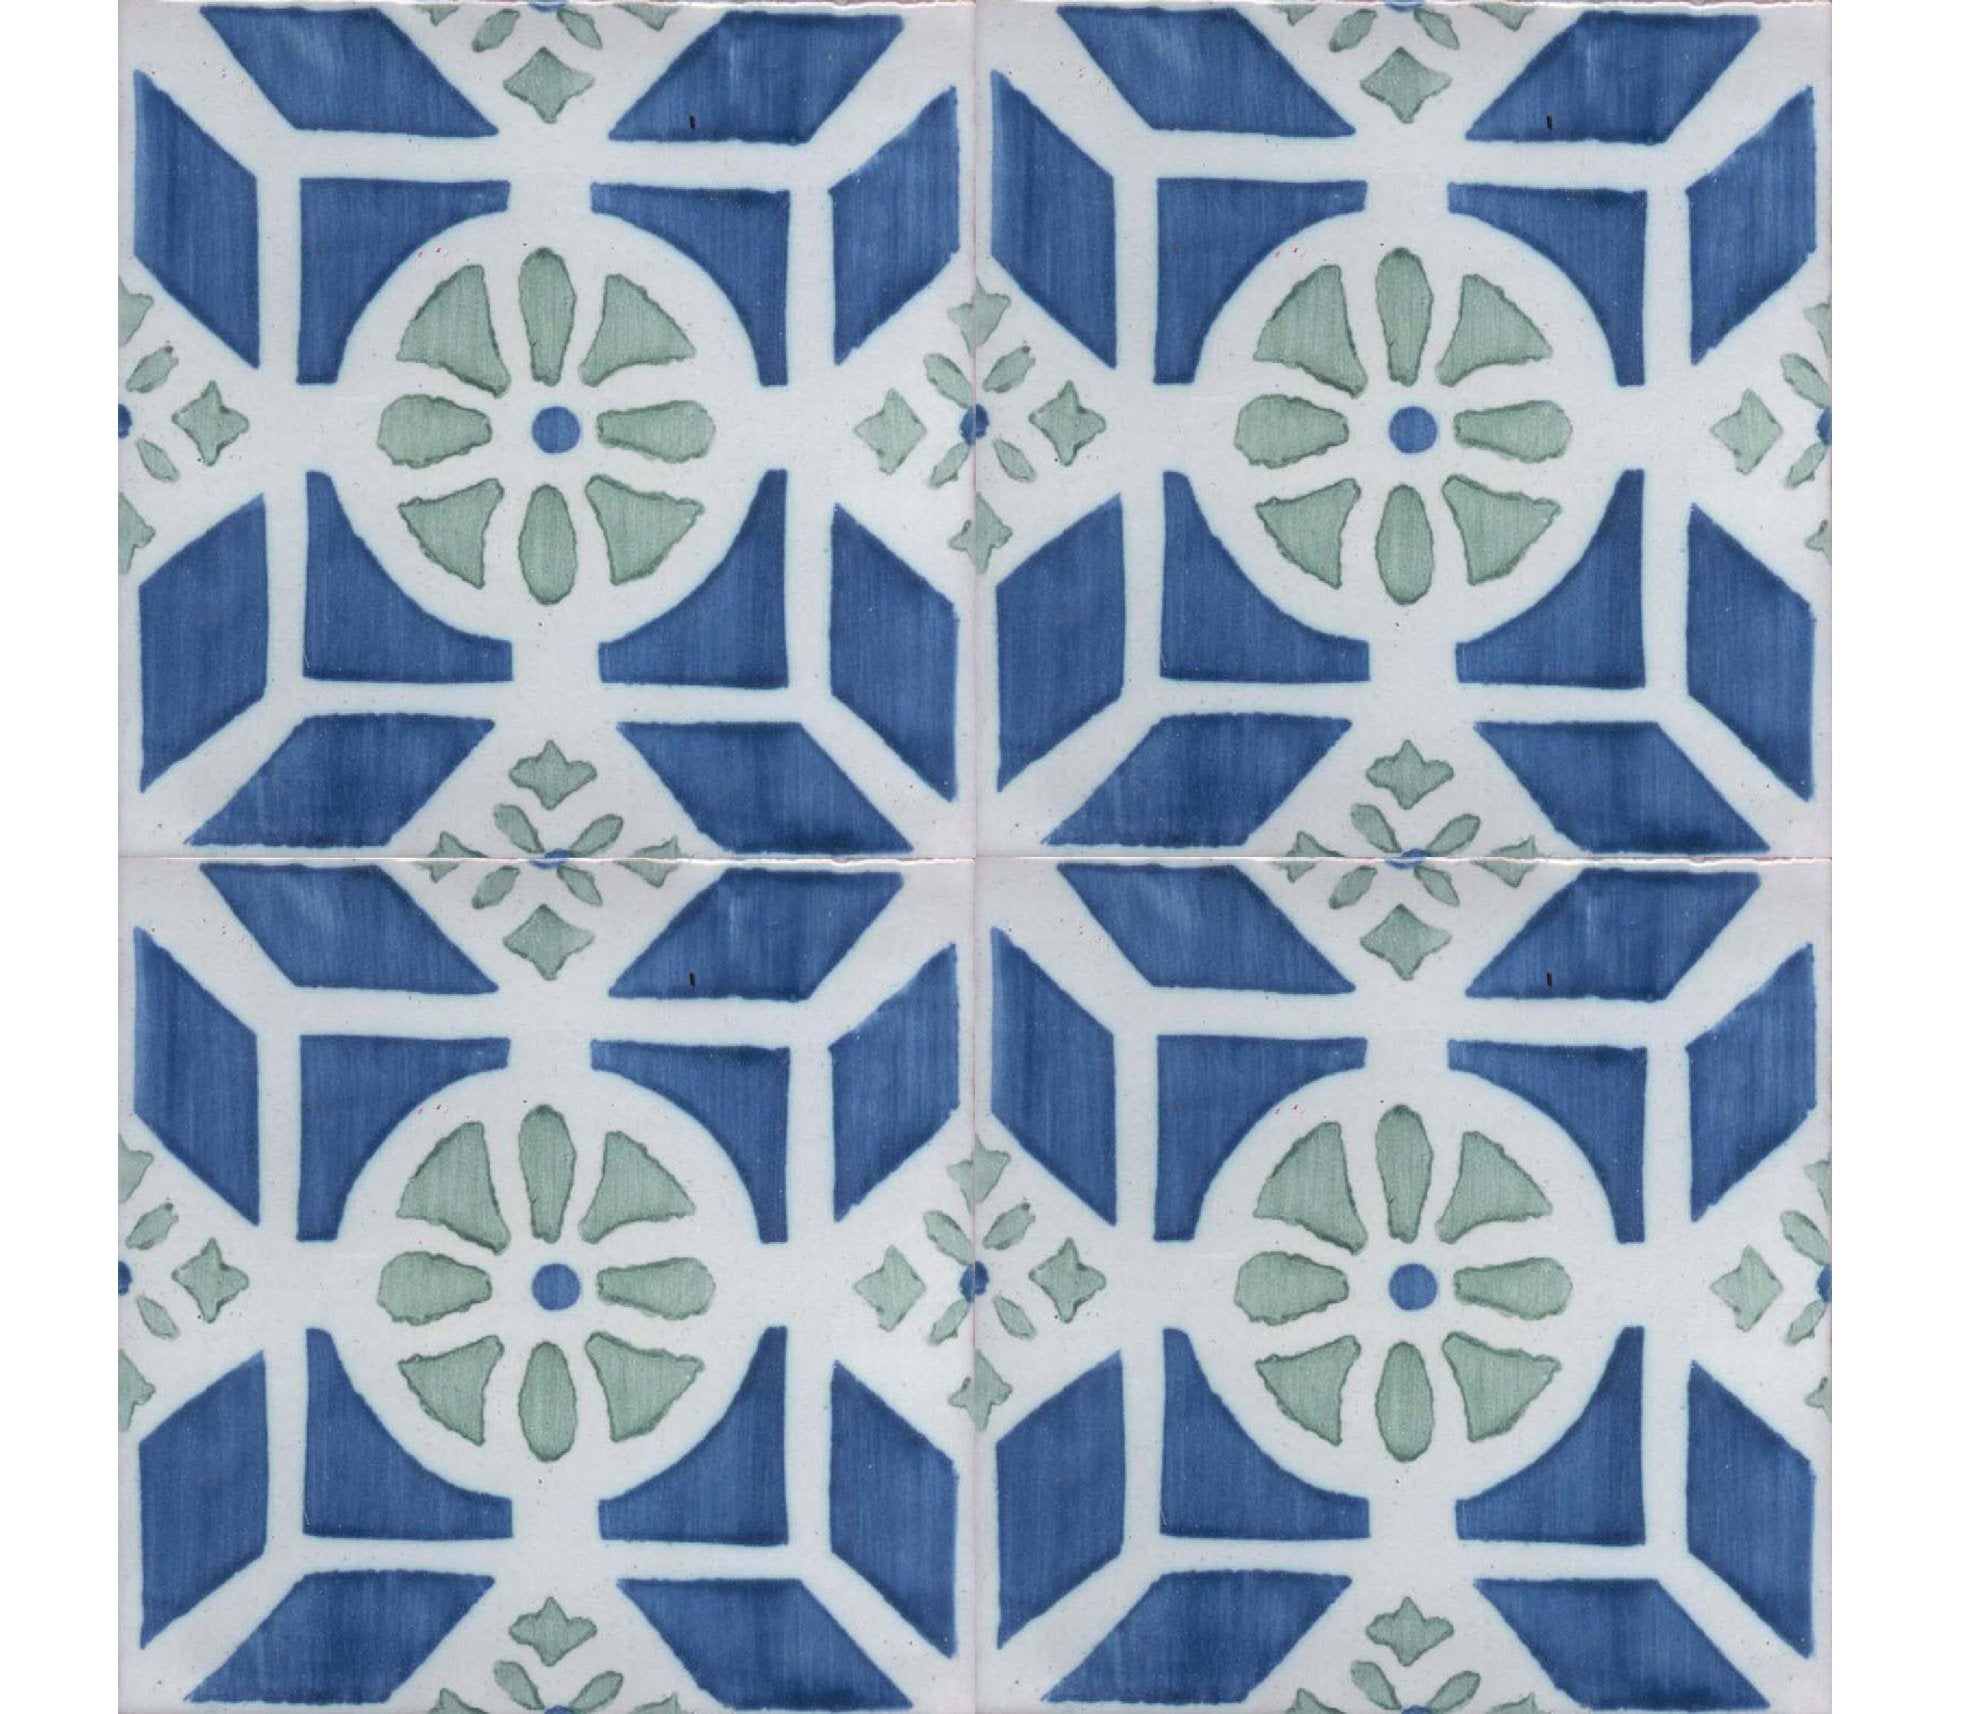 Series S Handpainted Tiles Product Image 43